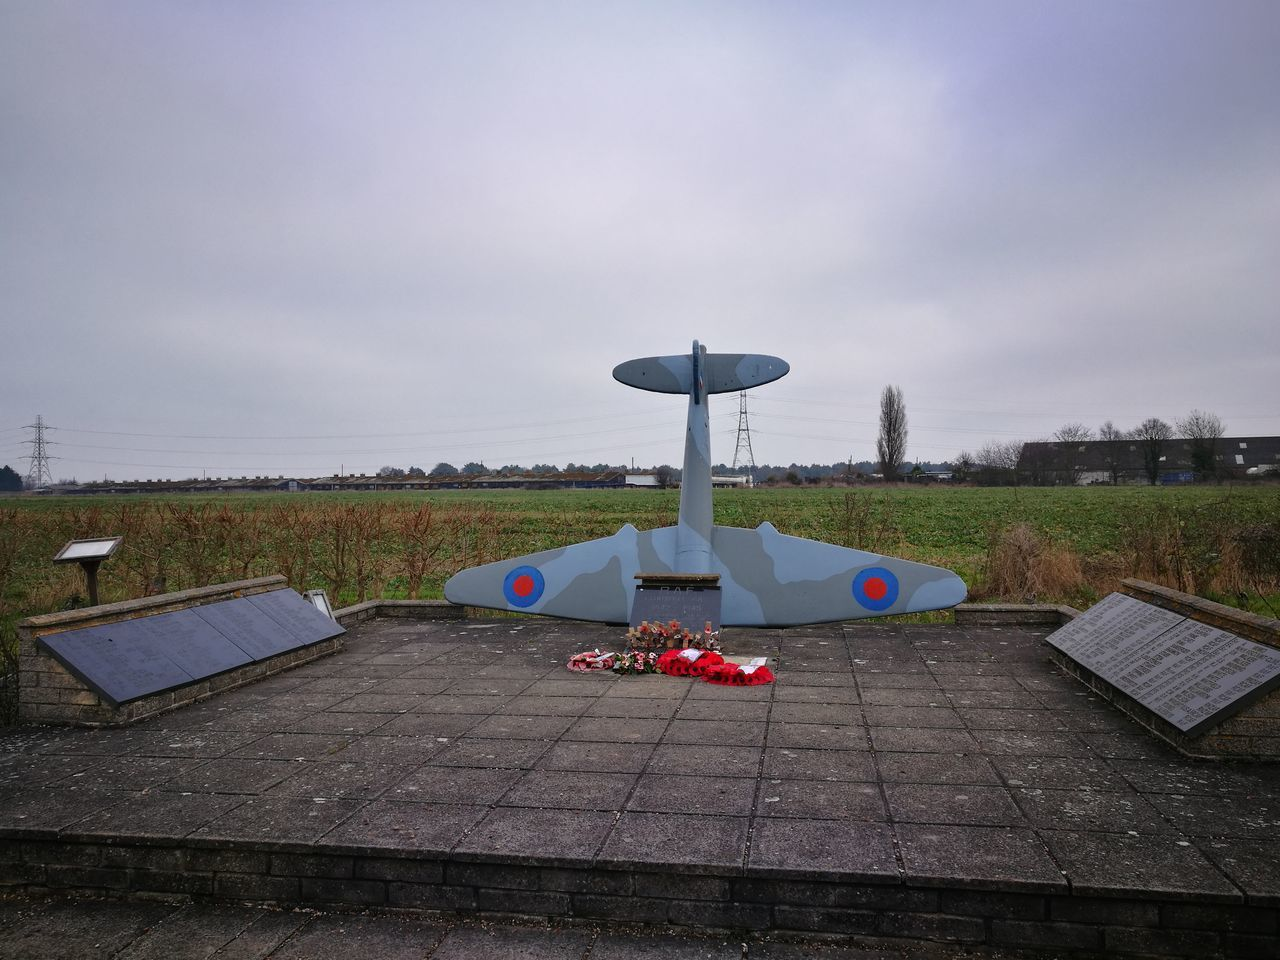 Blue Clear Sky Sunlight Tranquil Scene Sky Outdoors No People Cloud - Sky Day Nature War Memorial Mosquito Royal Air Force Memorial Royal Air Force Poppies